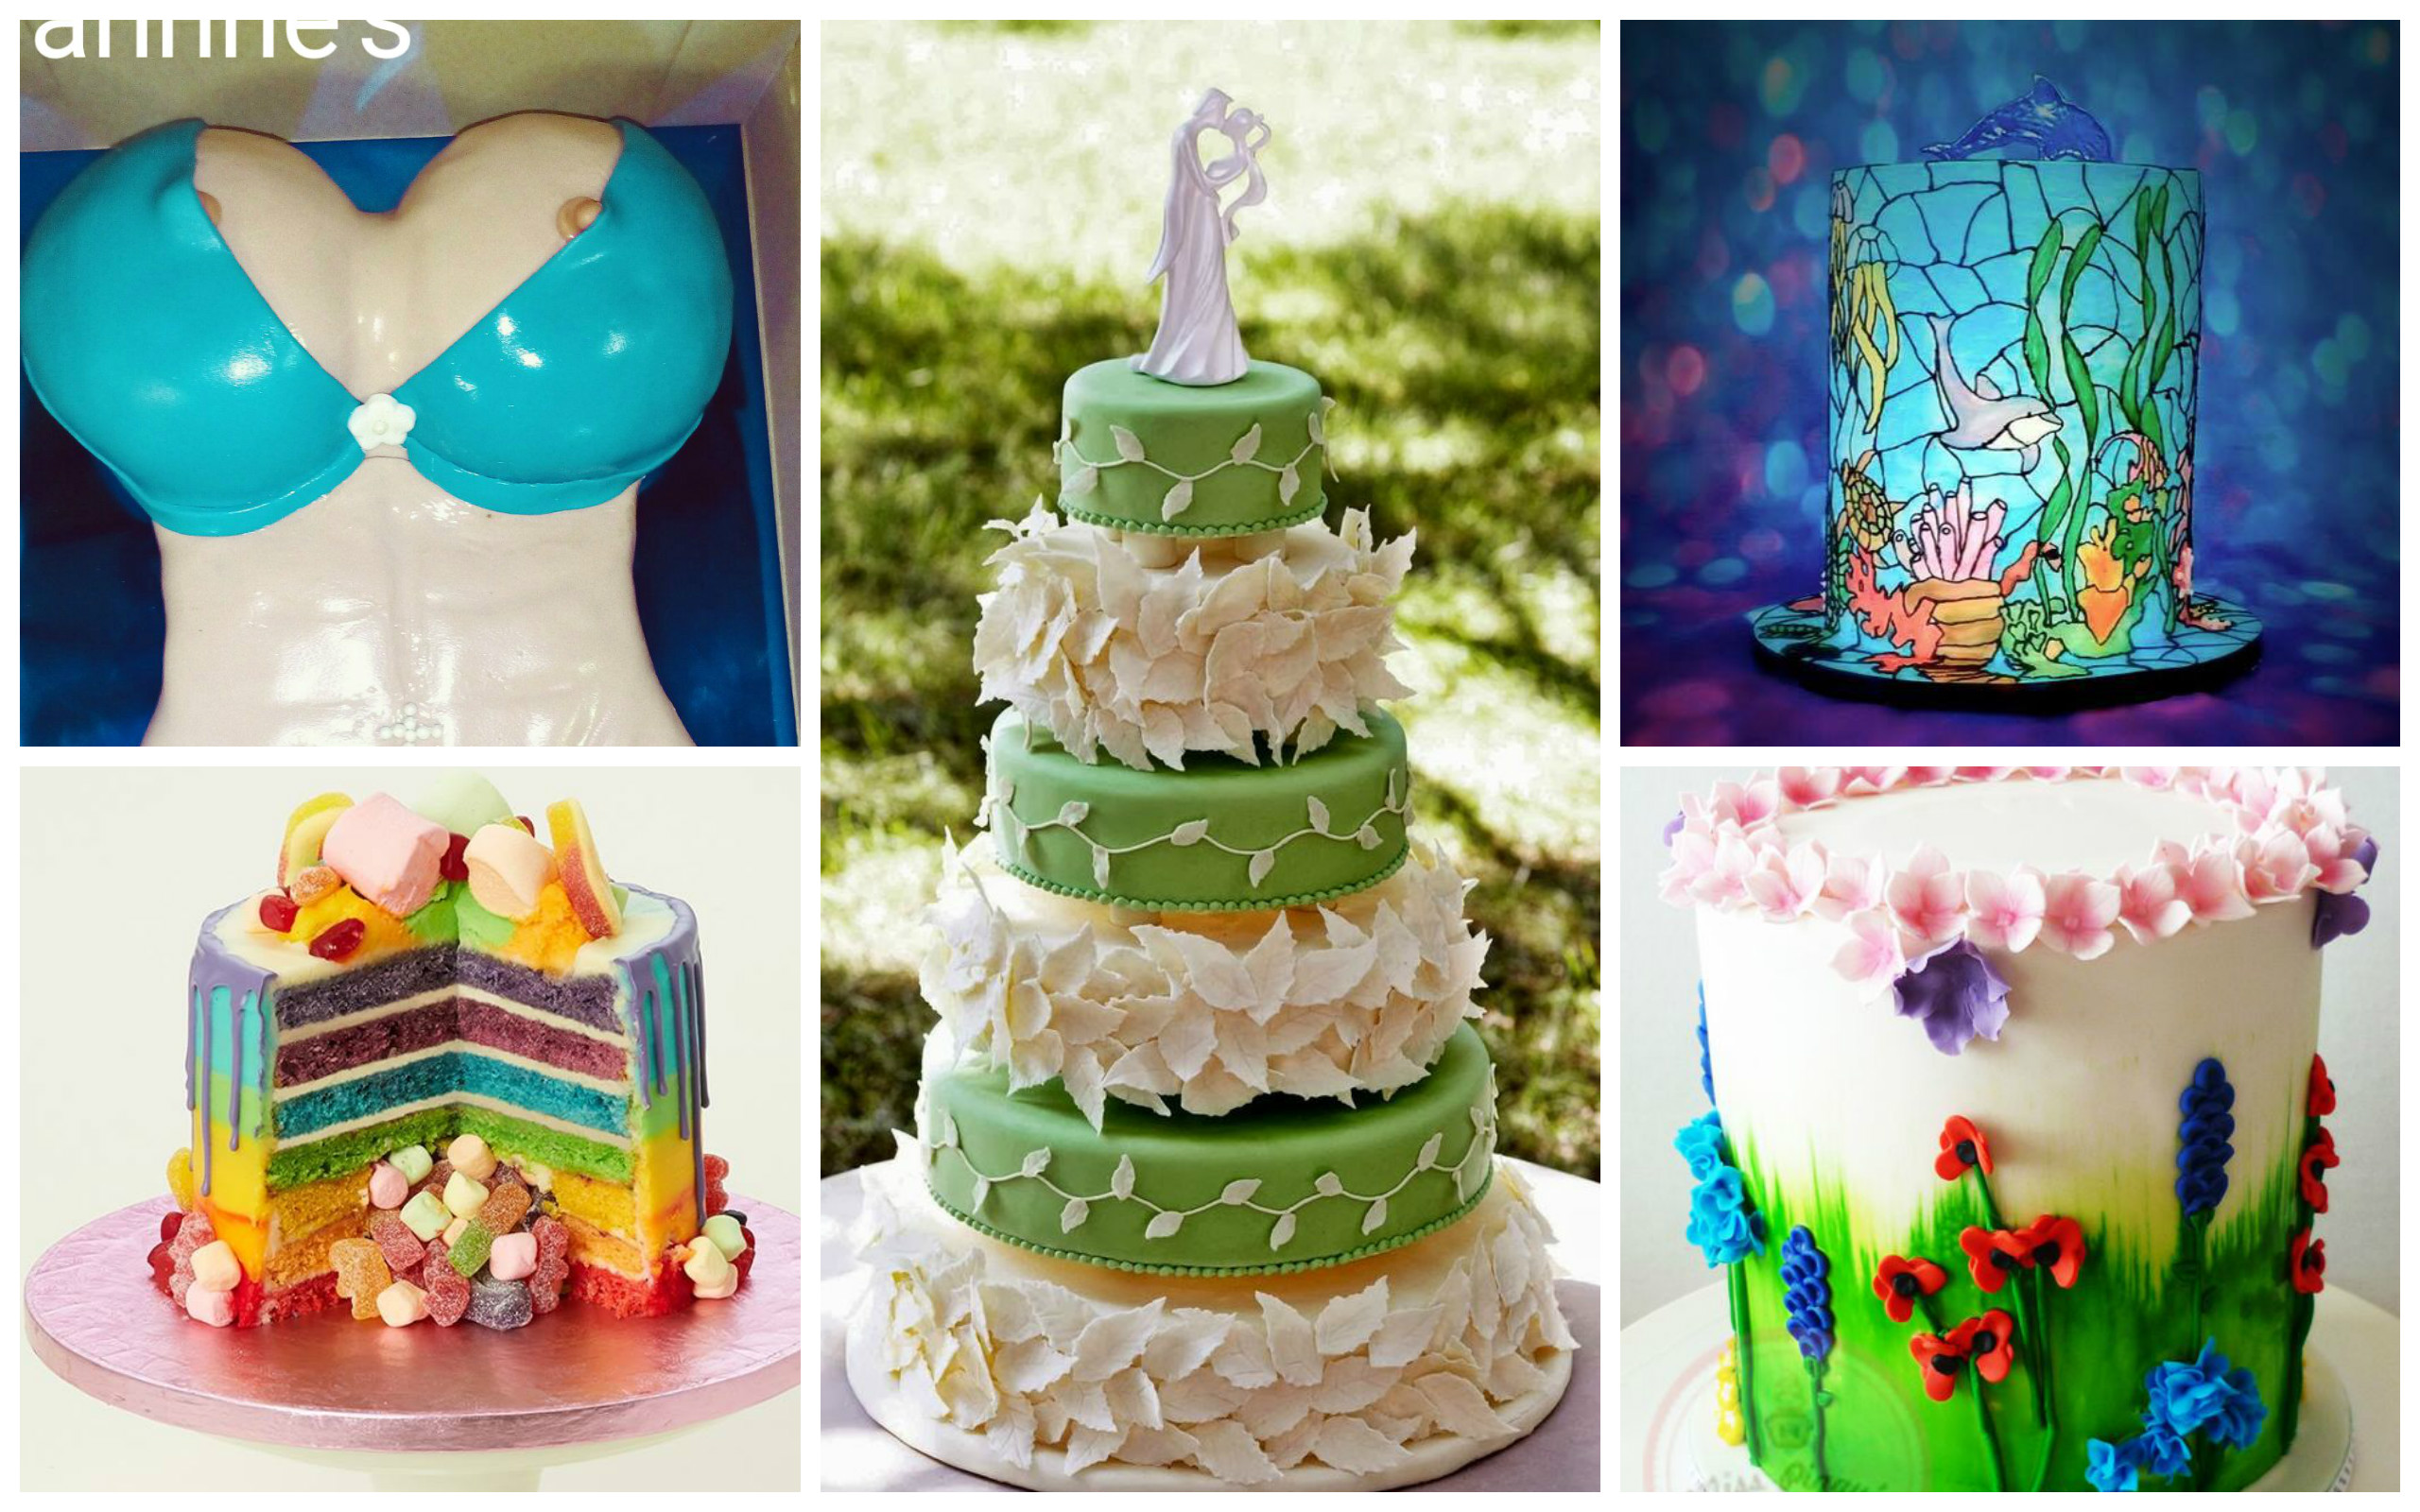 cool cake designs search for the coolest cake designer 3045